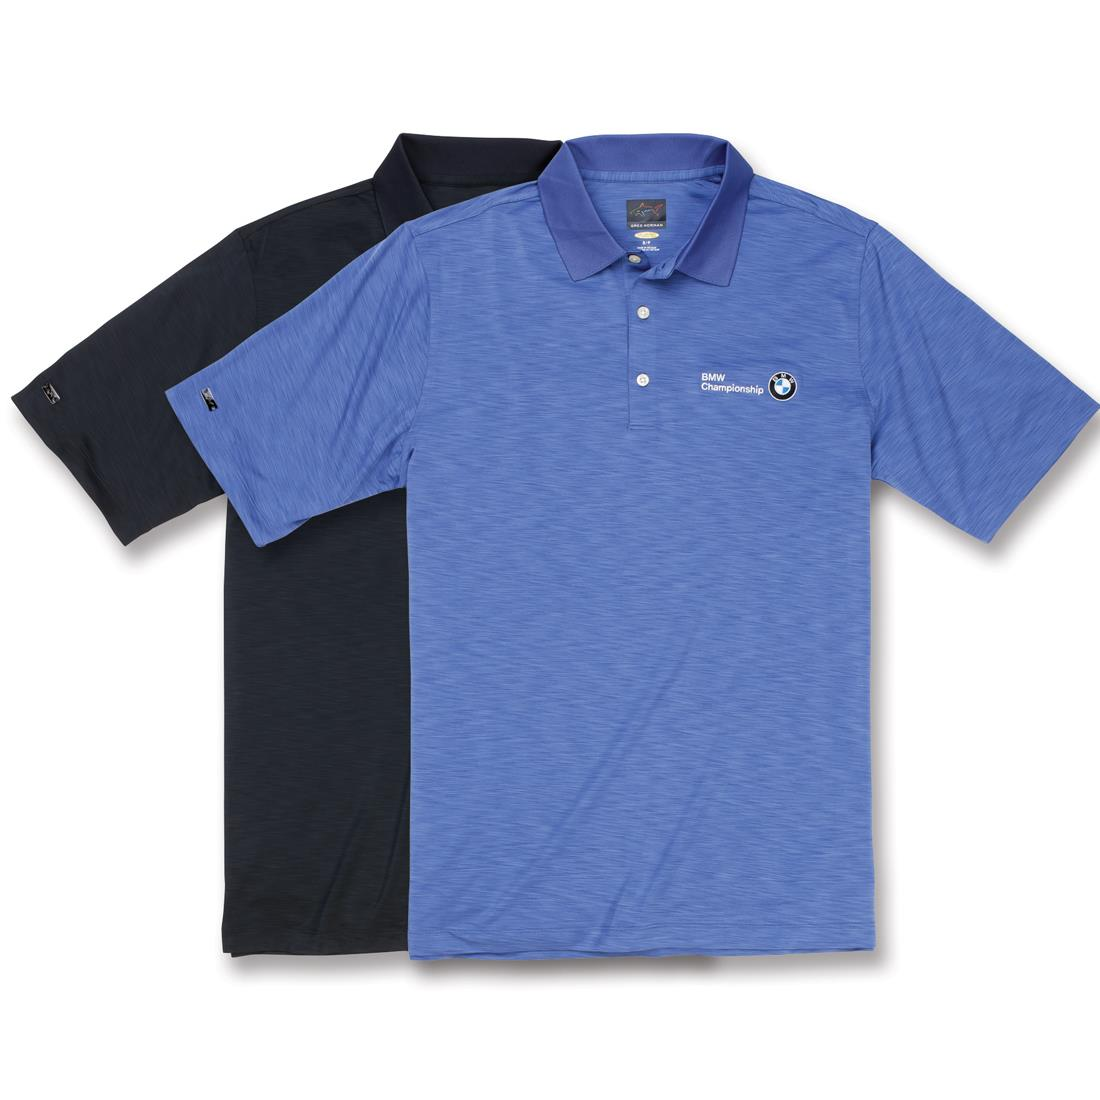 BMW Men's Greg Norman Play Dry® Heathered Polo